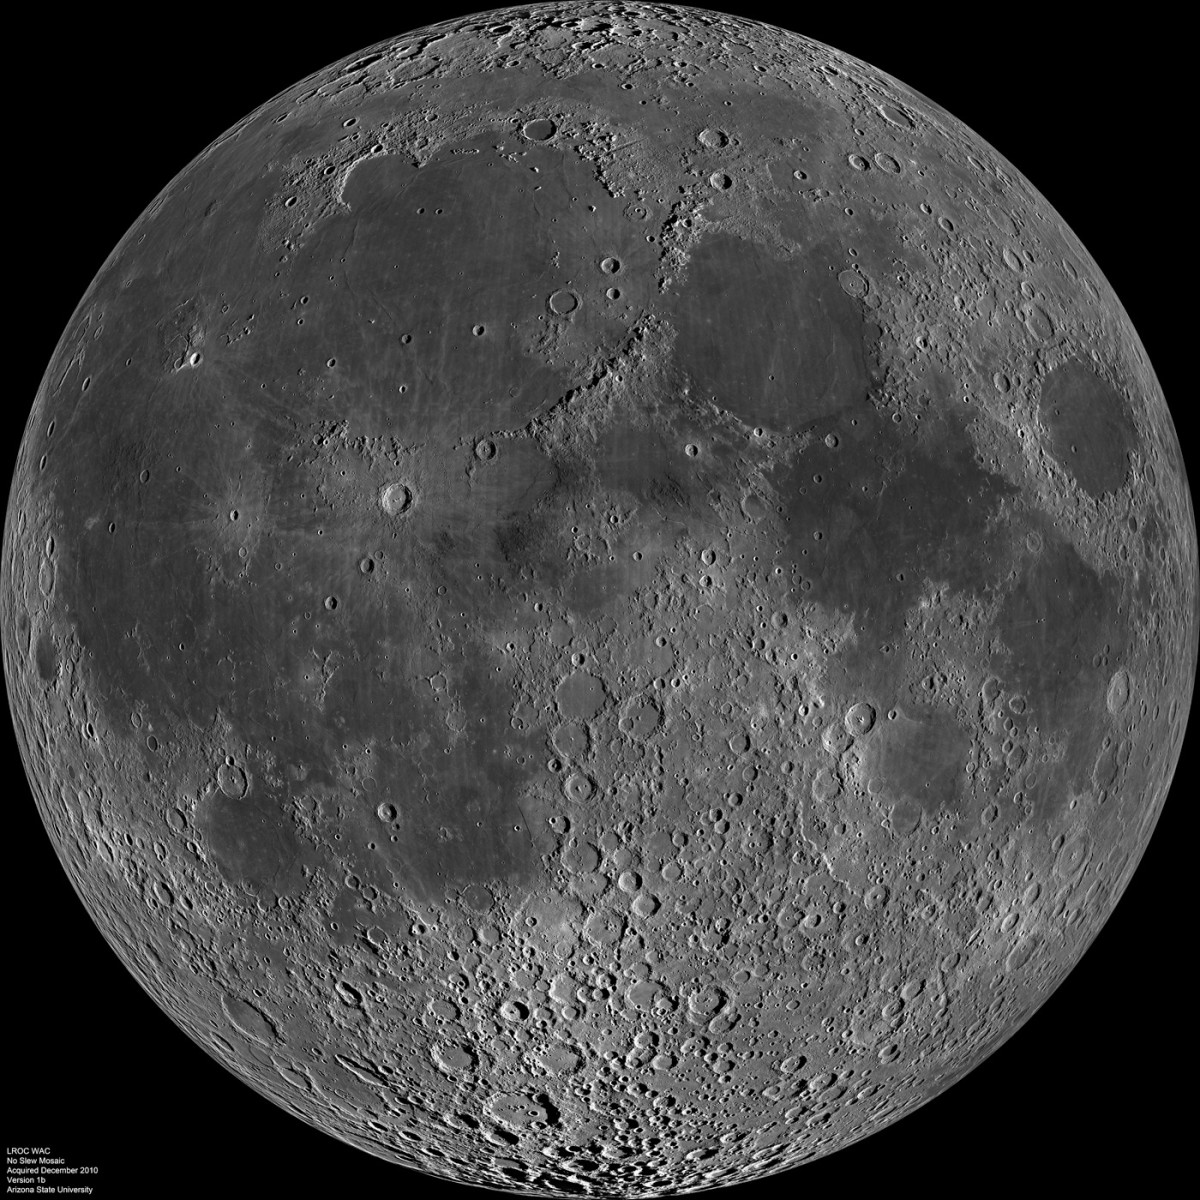 Near side of the moon